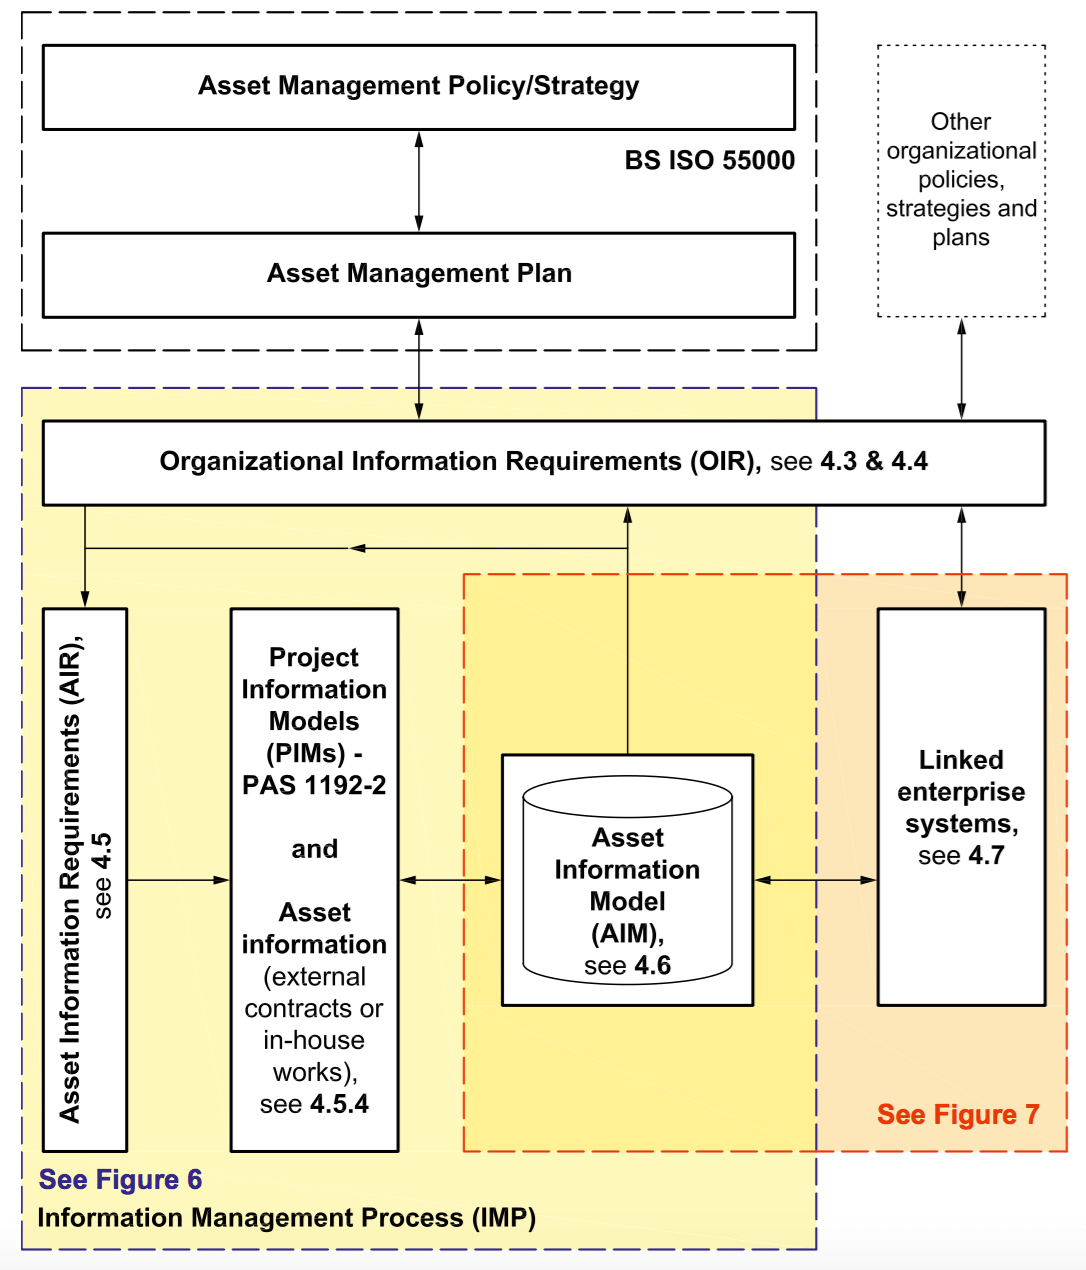 High Level Asset Information Process Map